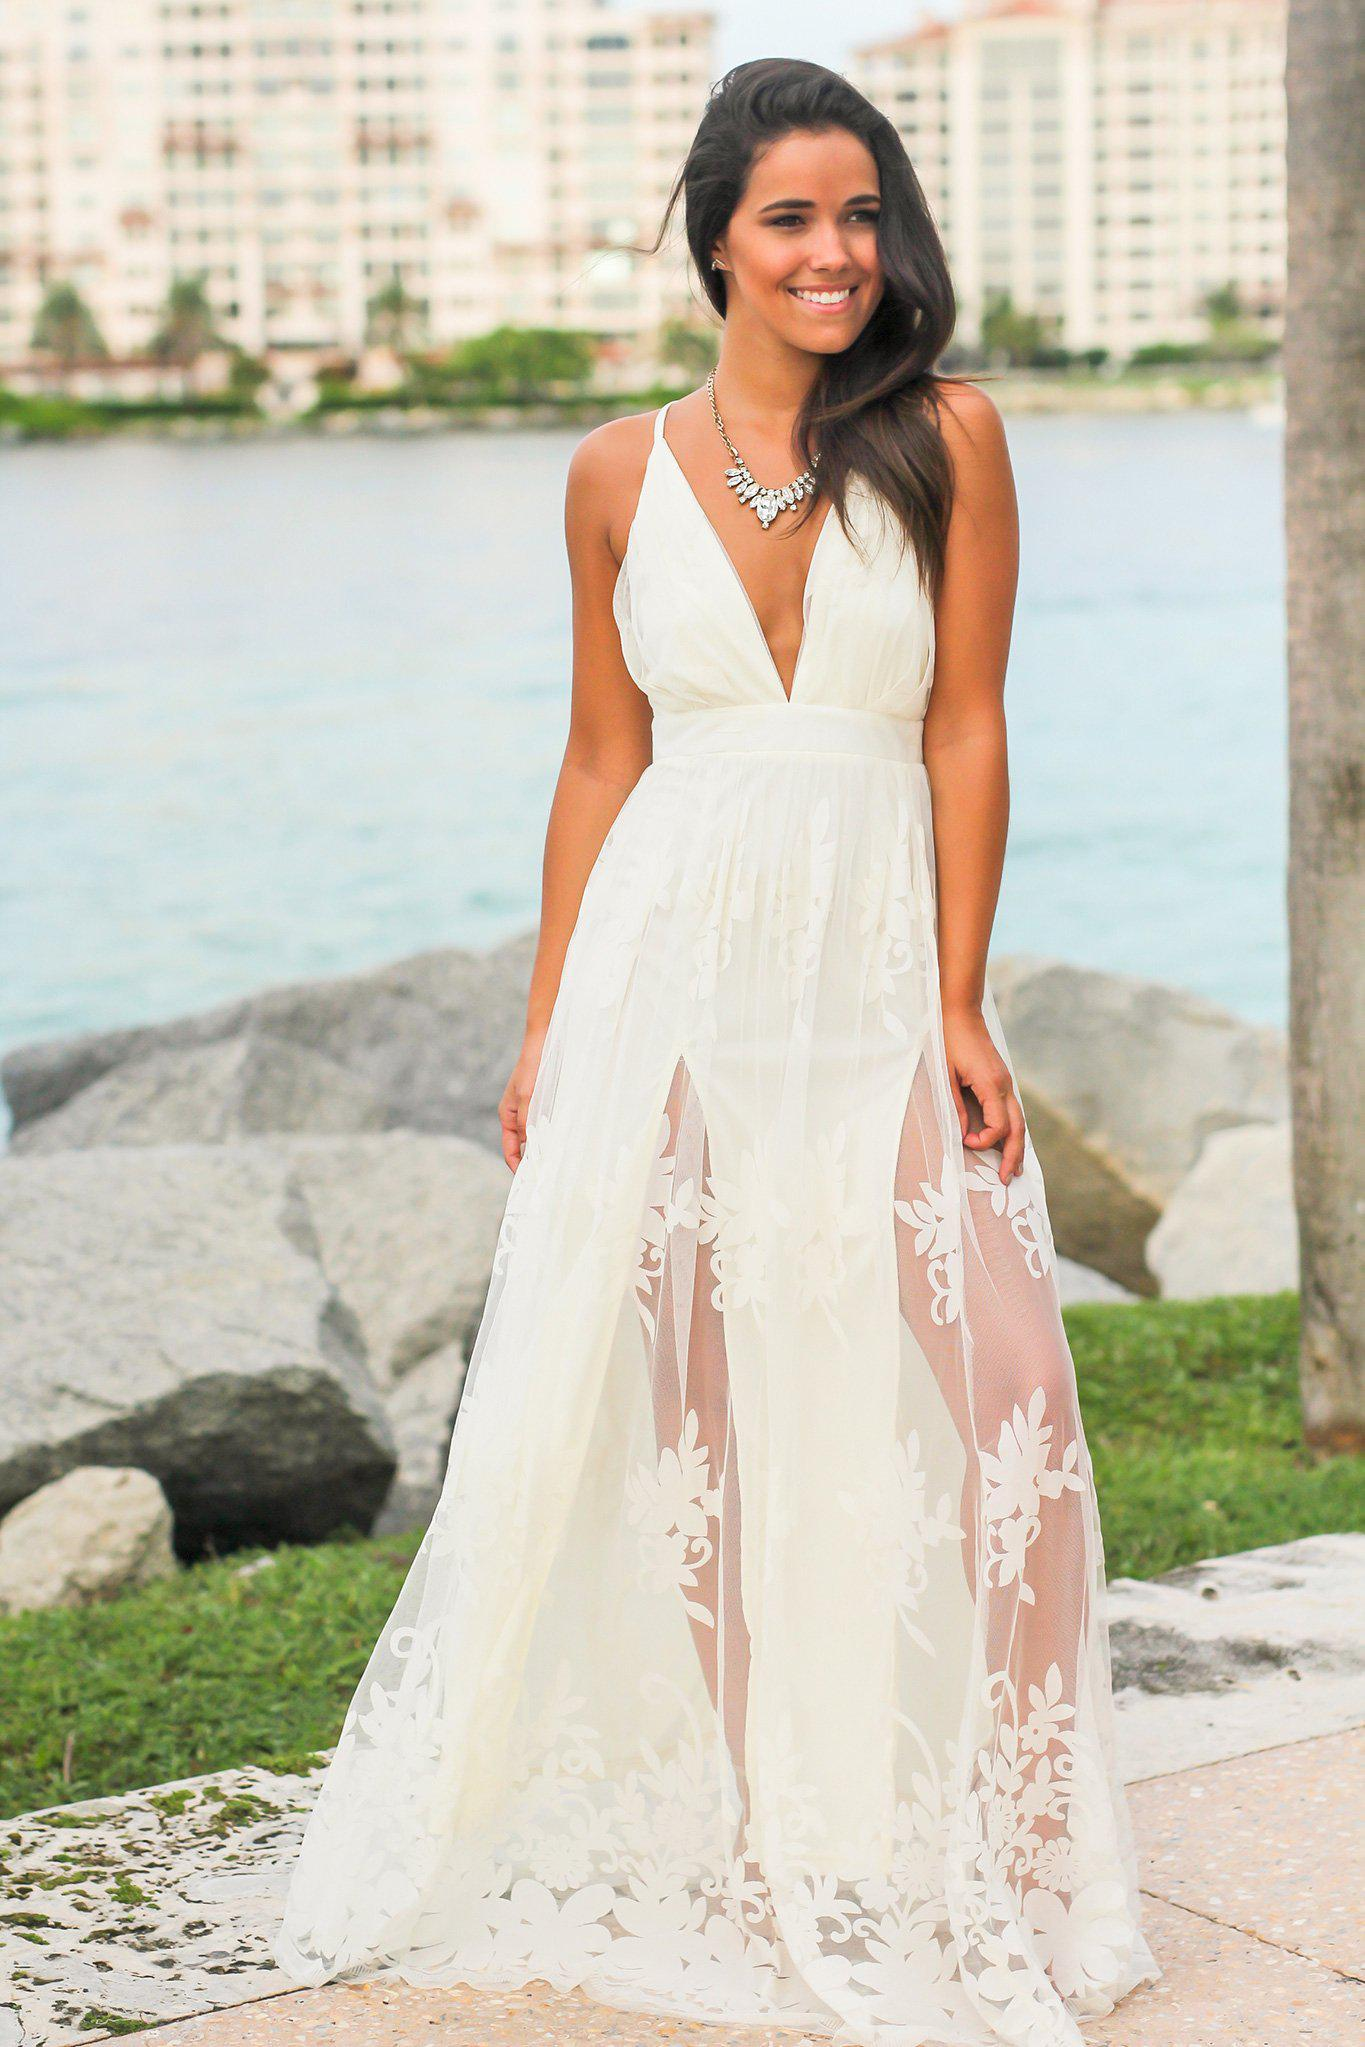 Tulle Maxi Dress In White Outfit